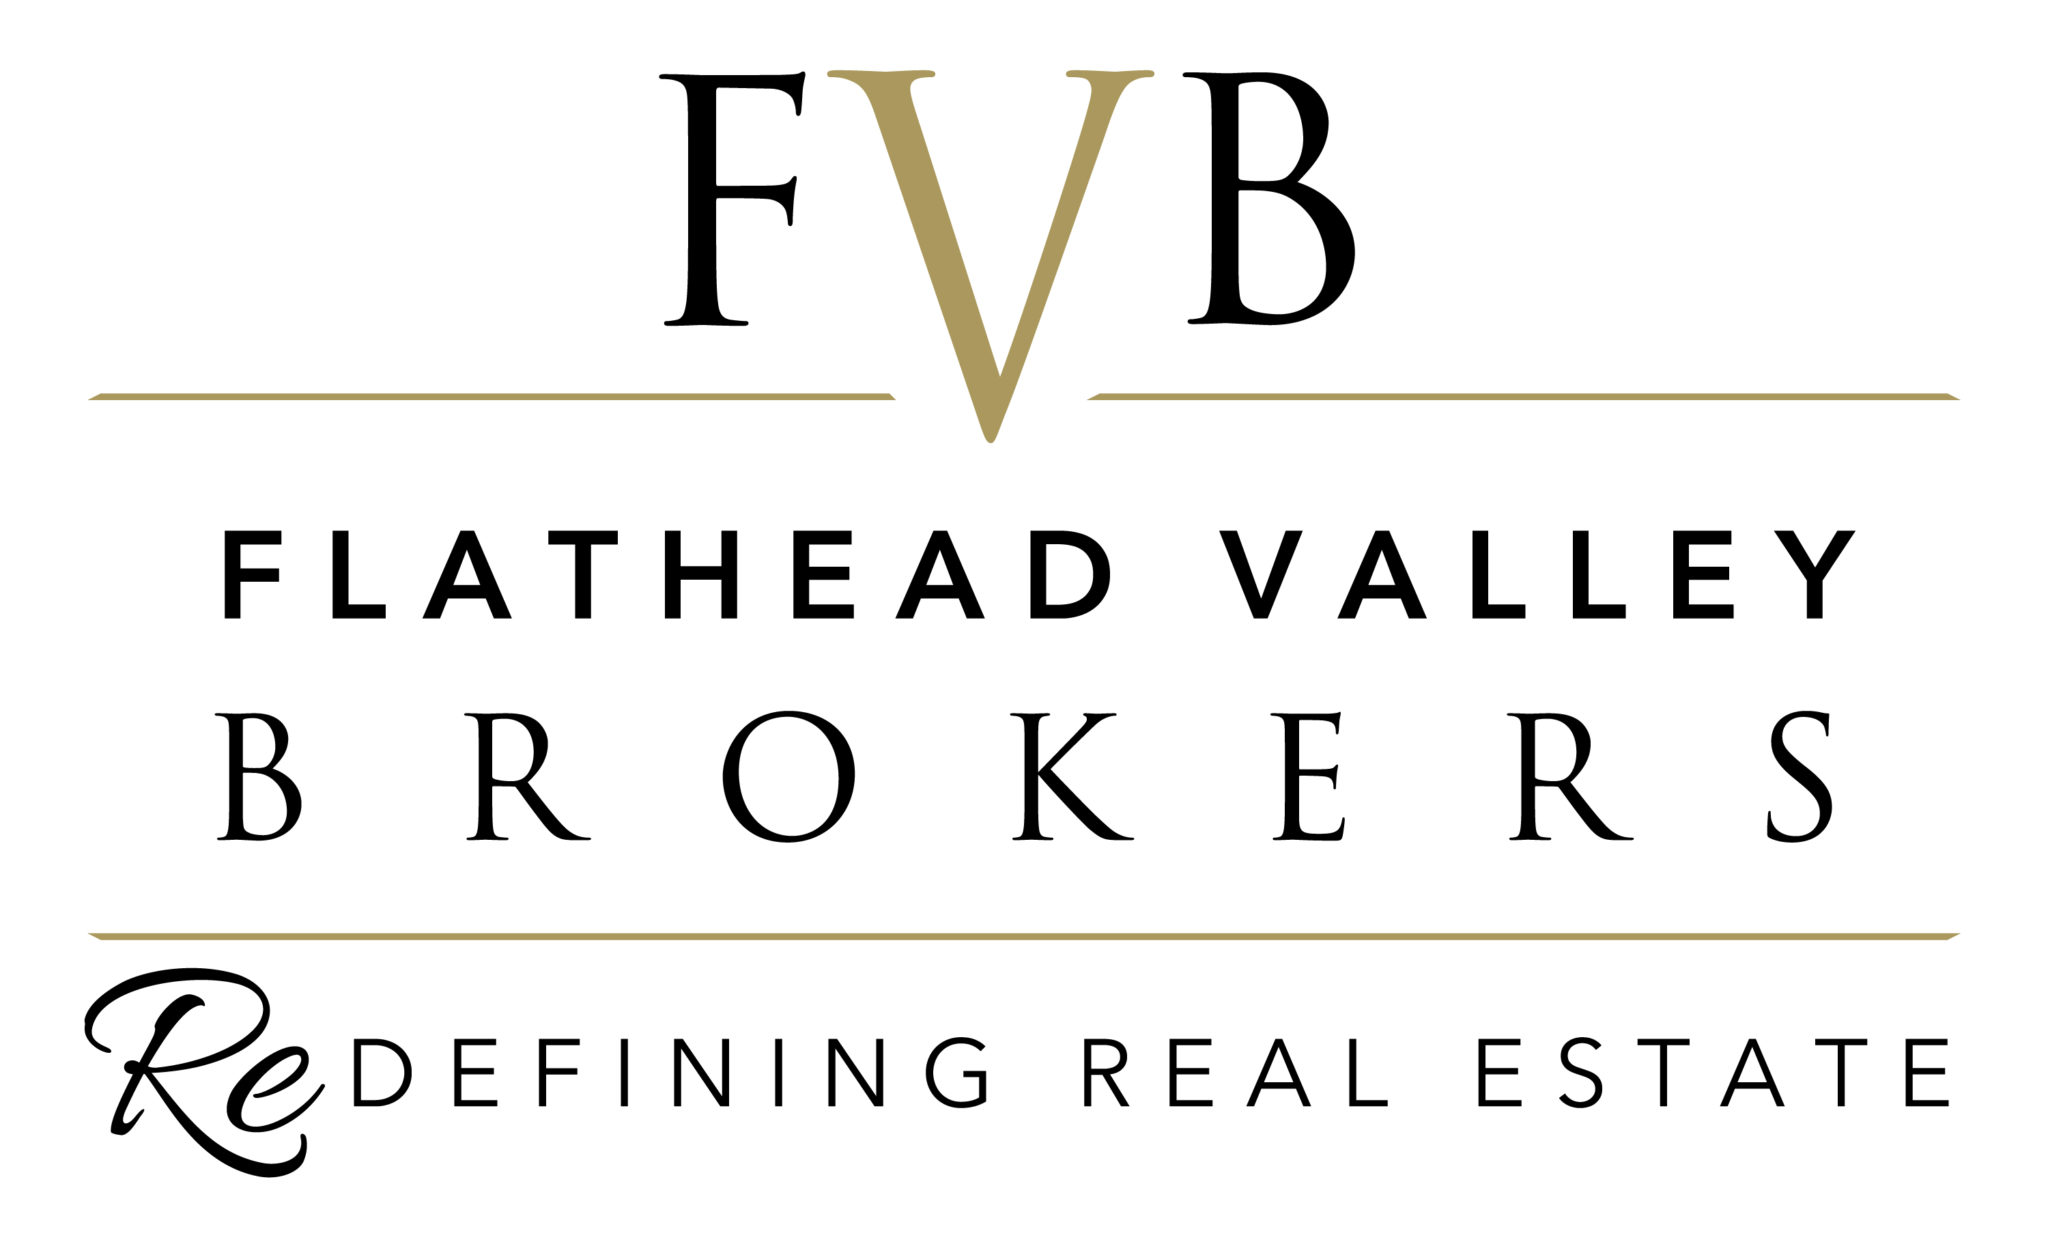 Flathead Valley Brokers